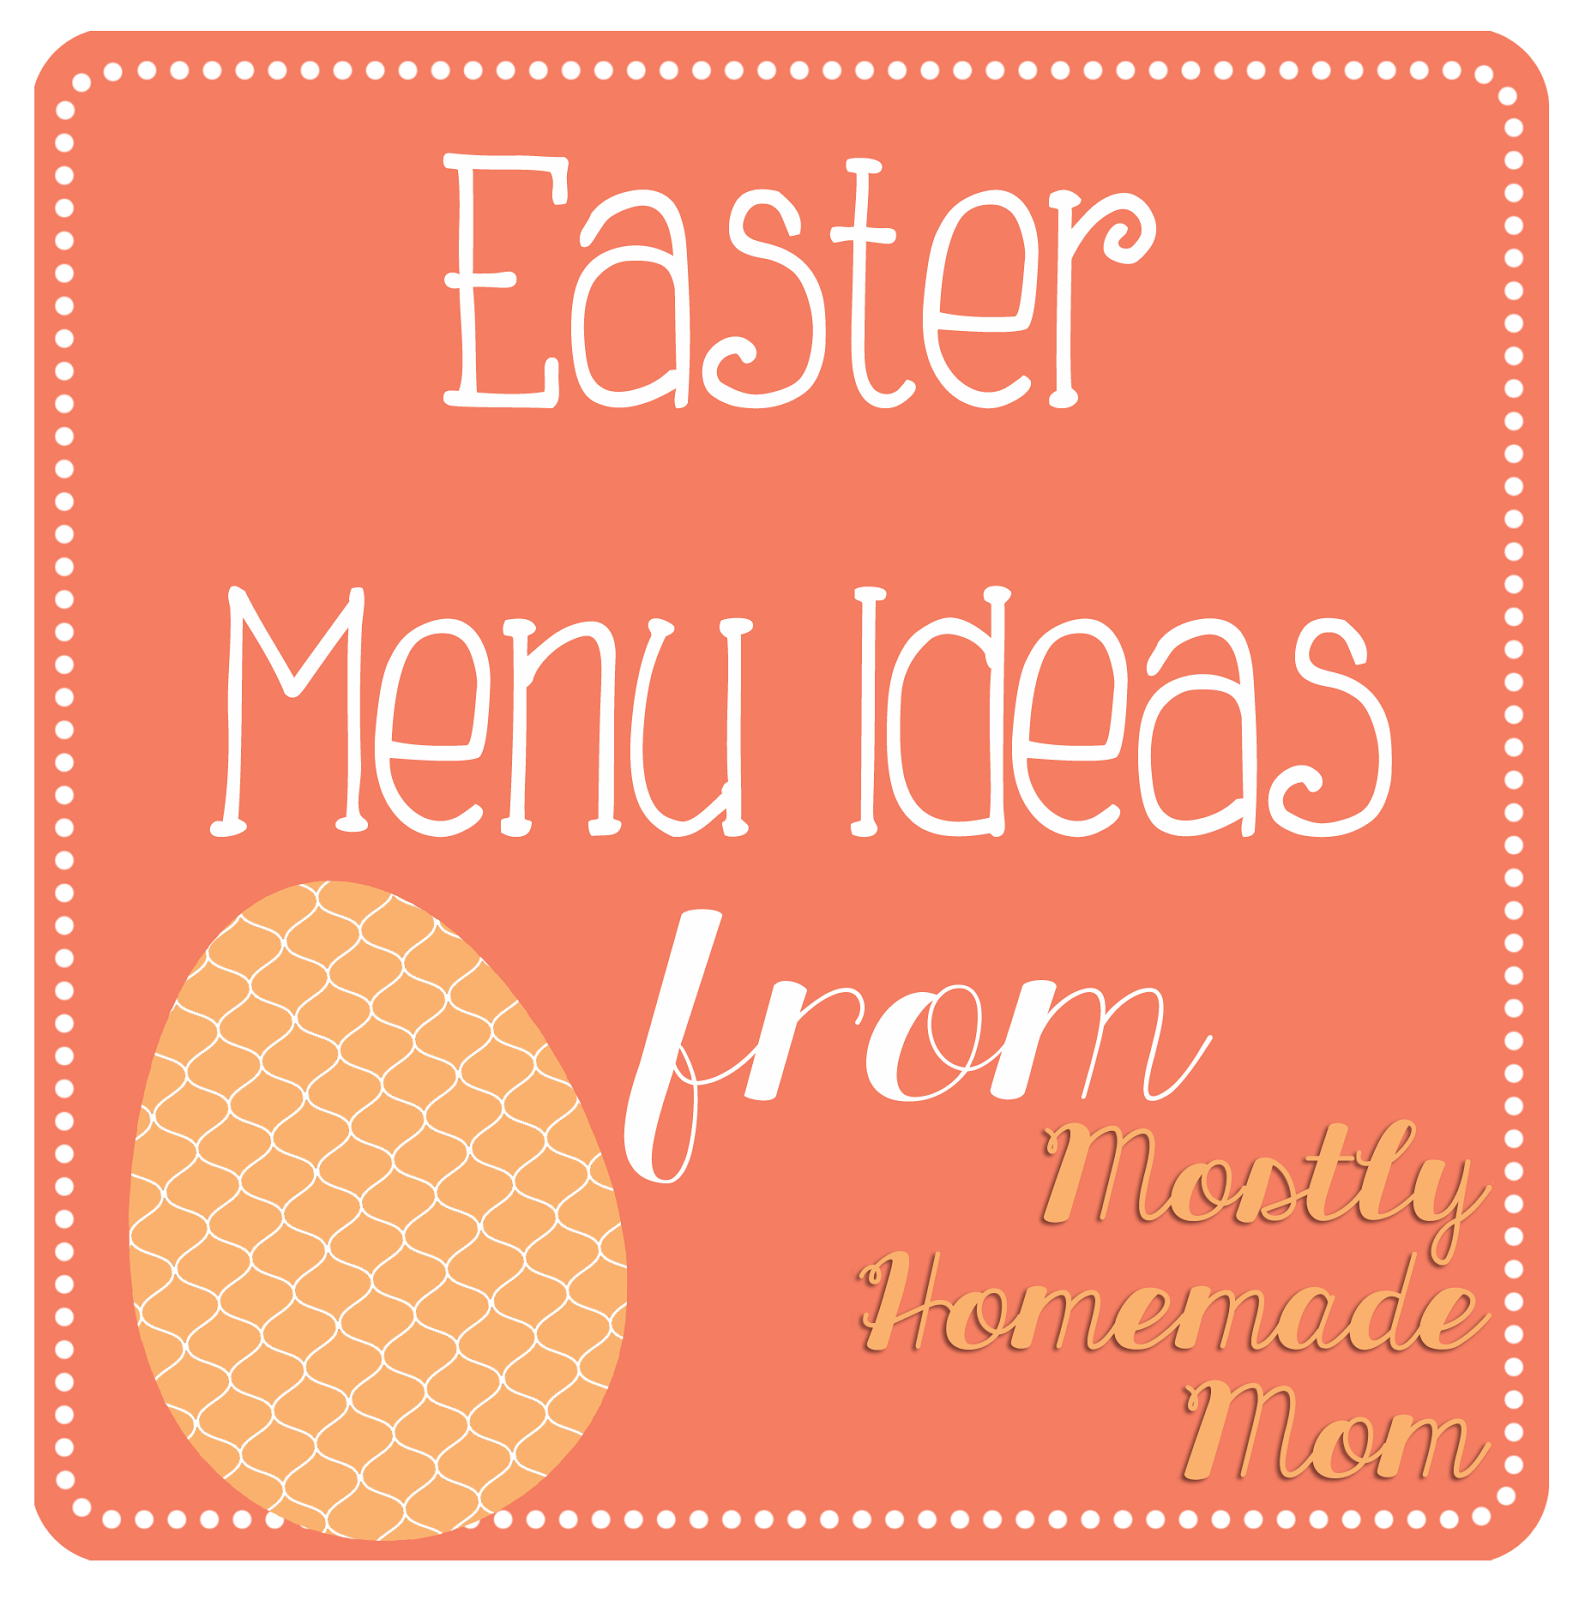 Easter Menu Ideas - Mostly Homemade Mom